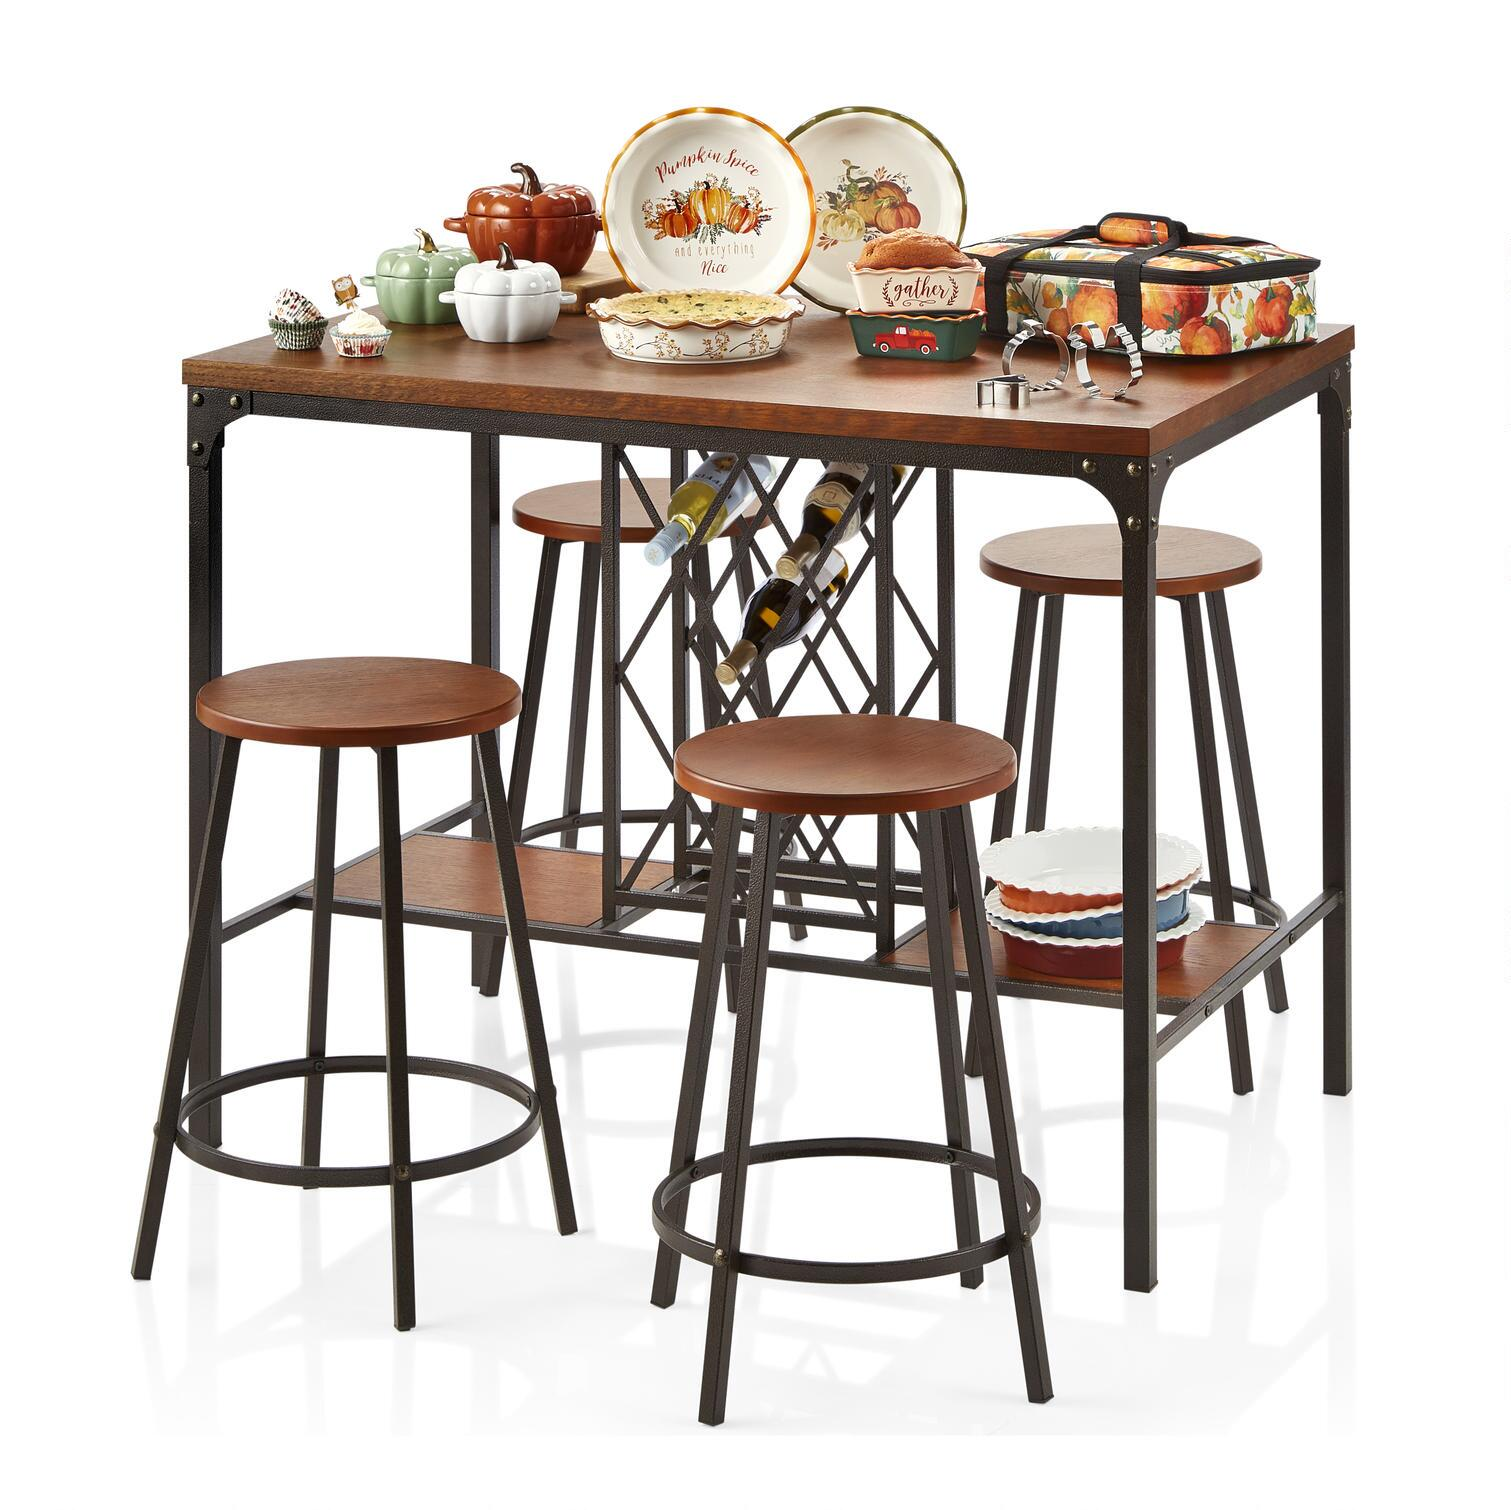 Attractive Metal/Wood Pub Dining Table And Chairs Set, 5 Piece